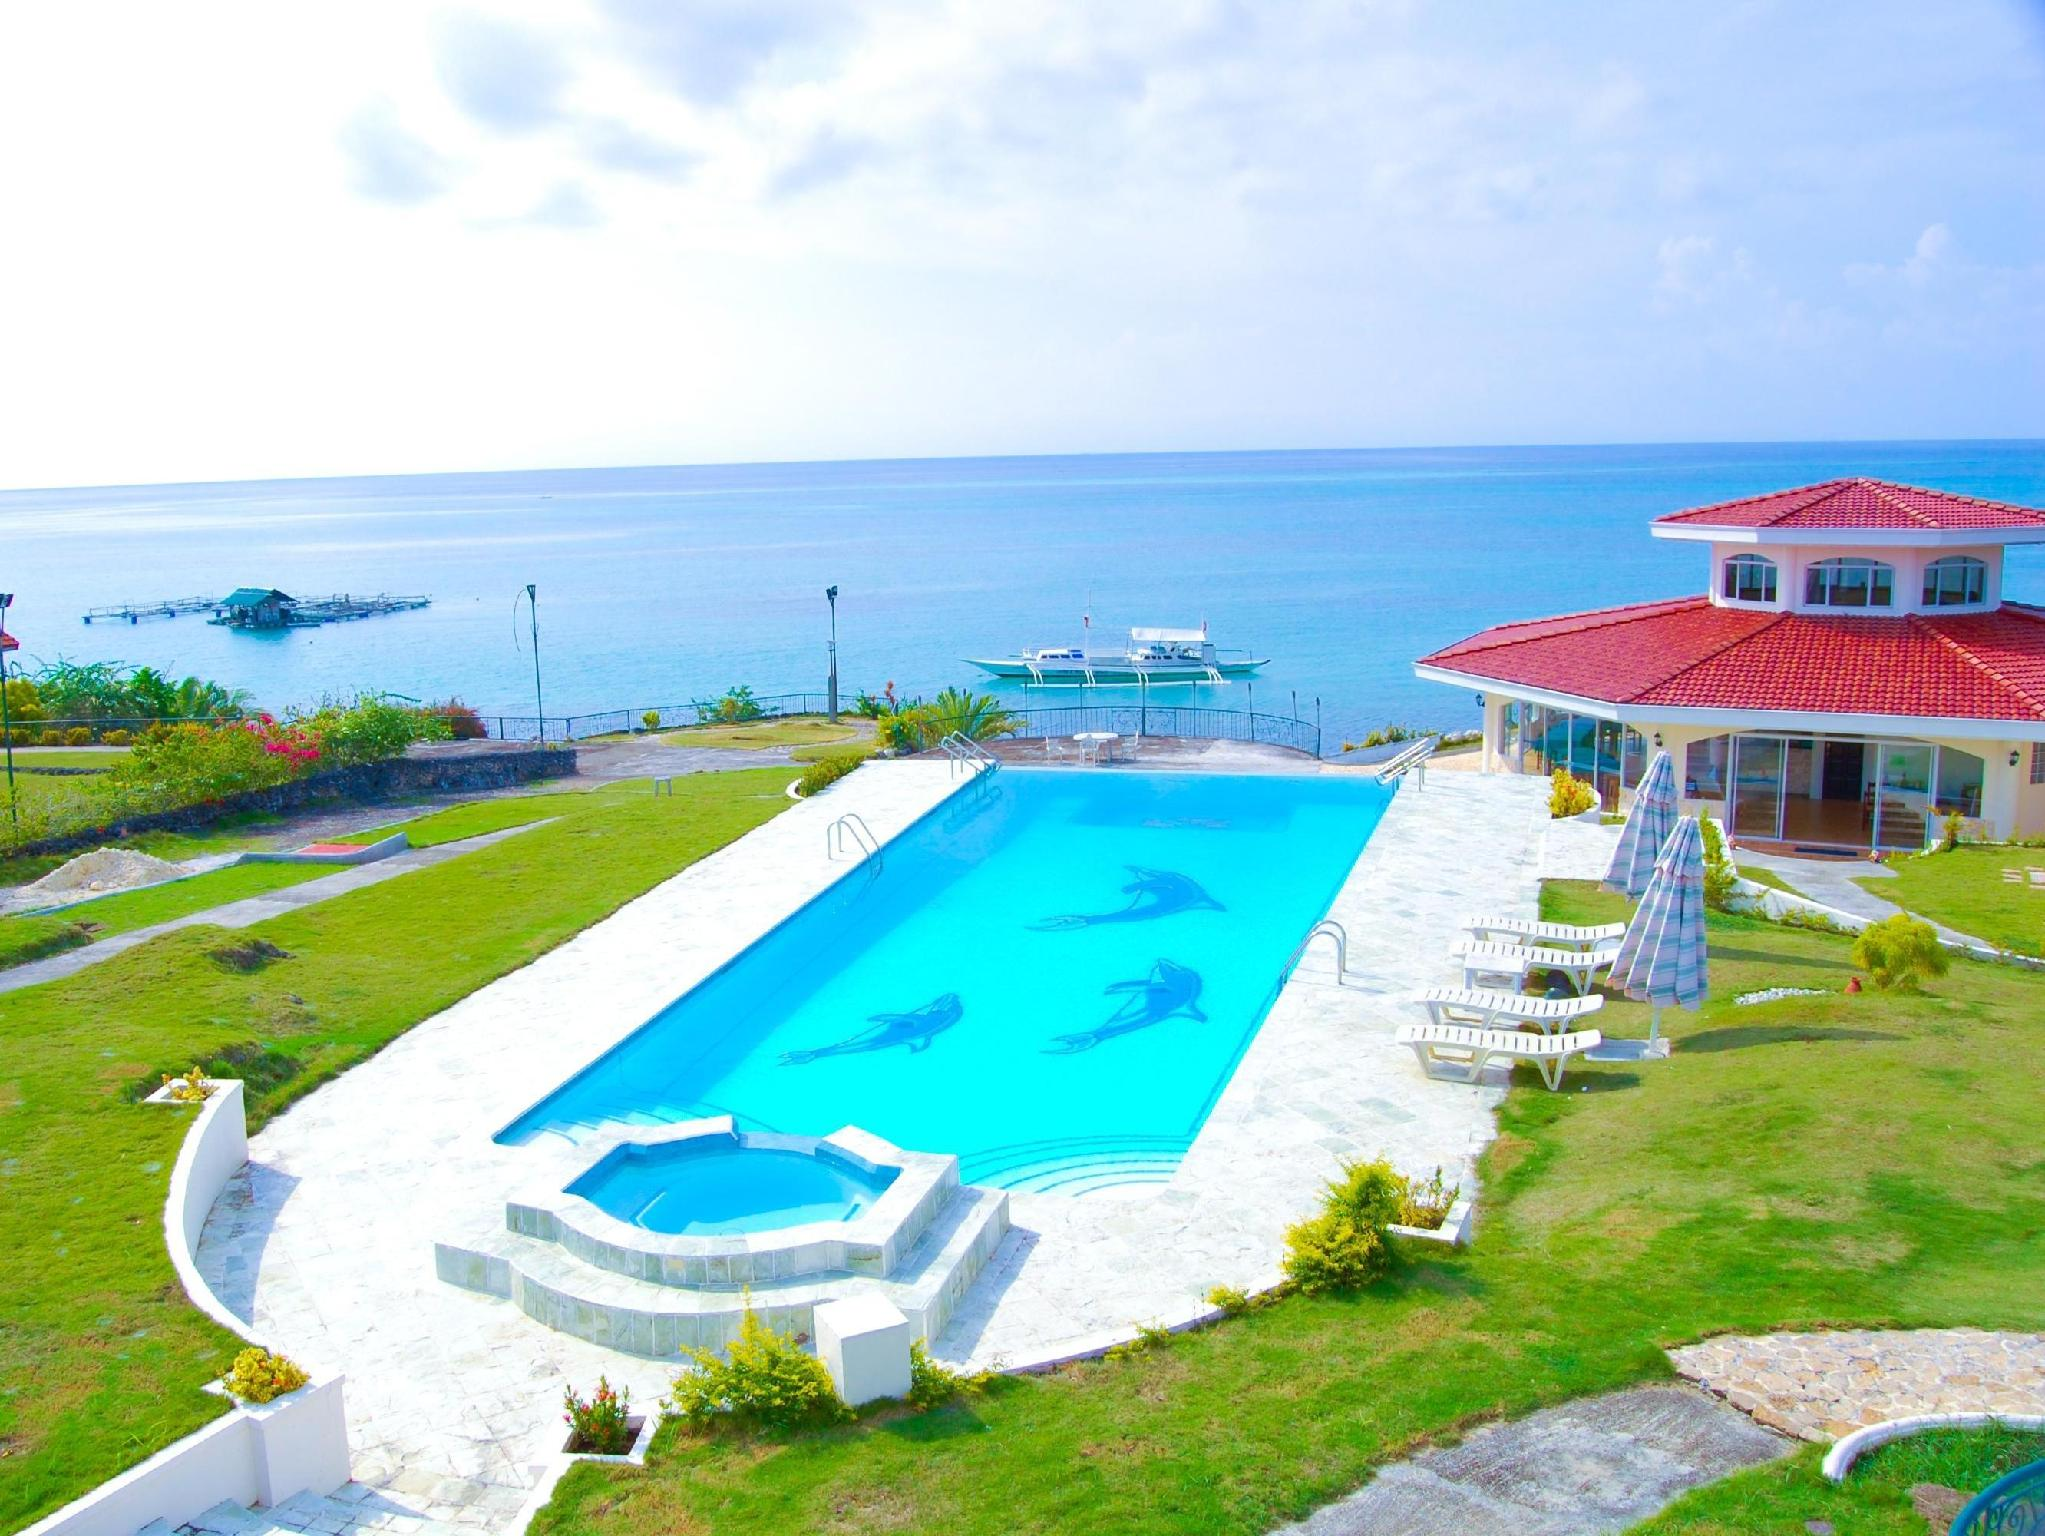 Sherwood Bay Aqua Resort & Dive School Bohol